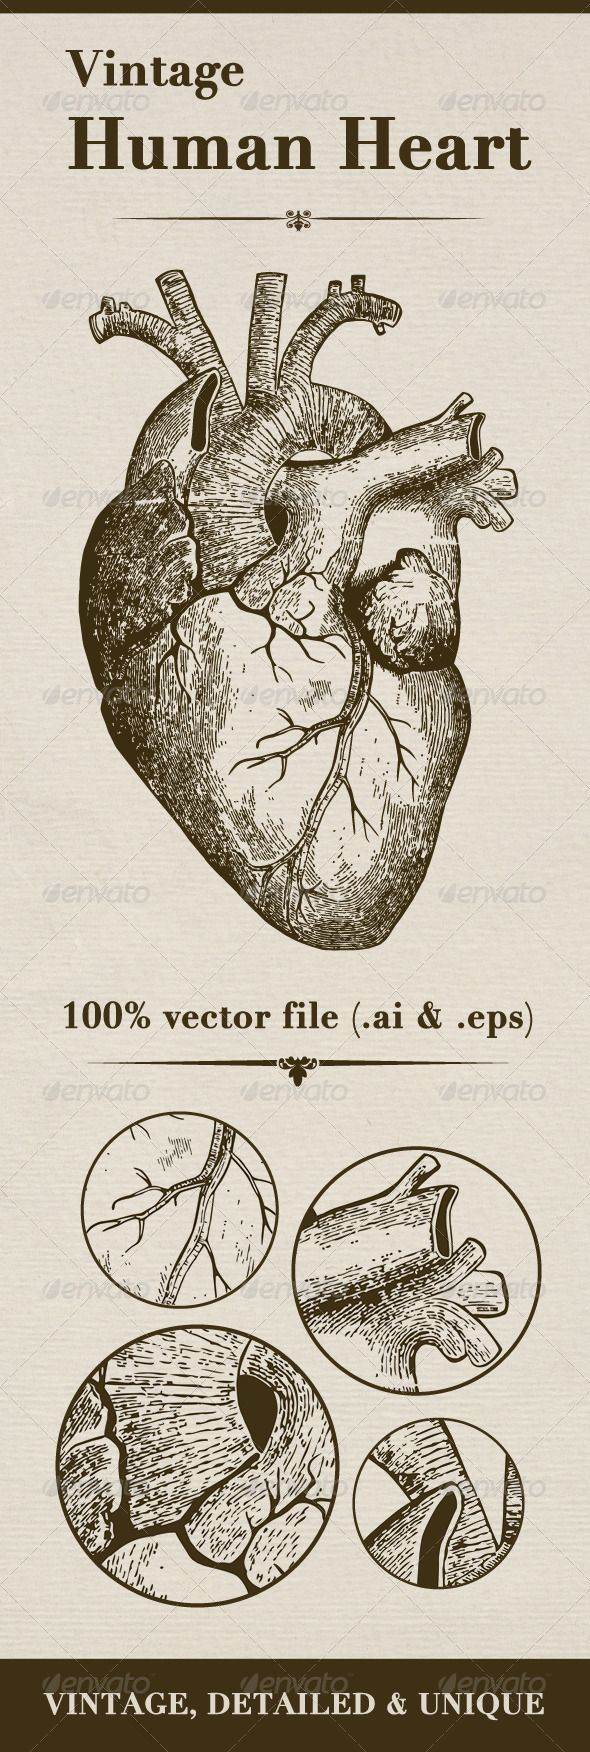 Vintage Human Heart #GraphicRiver I present You vintage vector human heart. Not some cartoon love symbol, but real organ of human body in XIX century medical textbook drawing style. Unique and vintage detailed look.